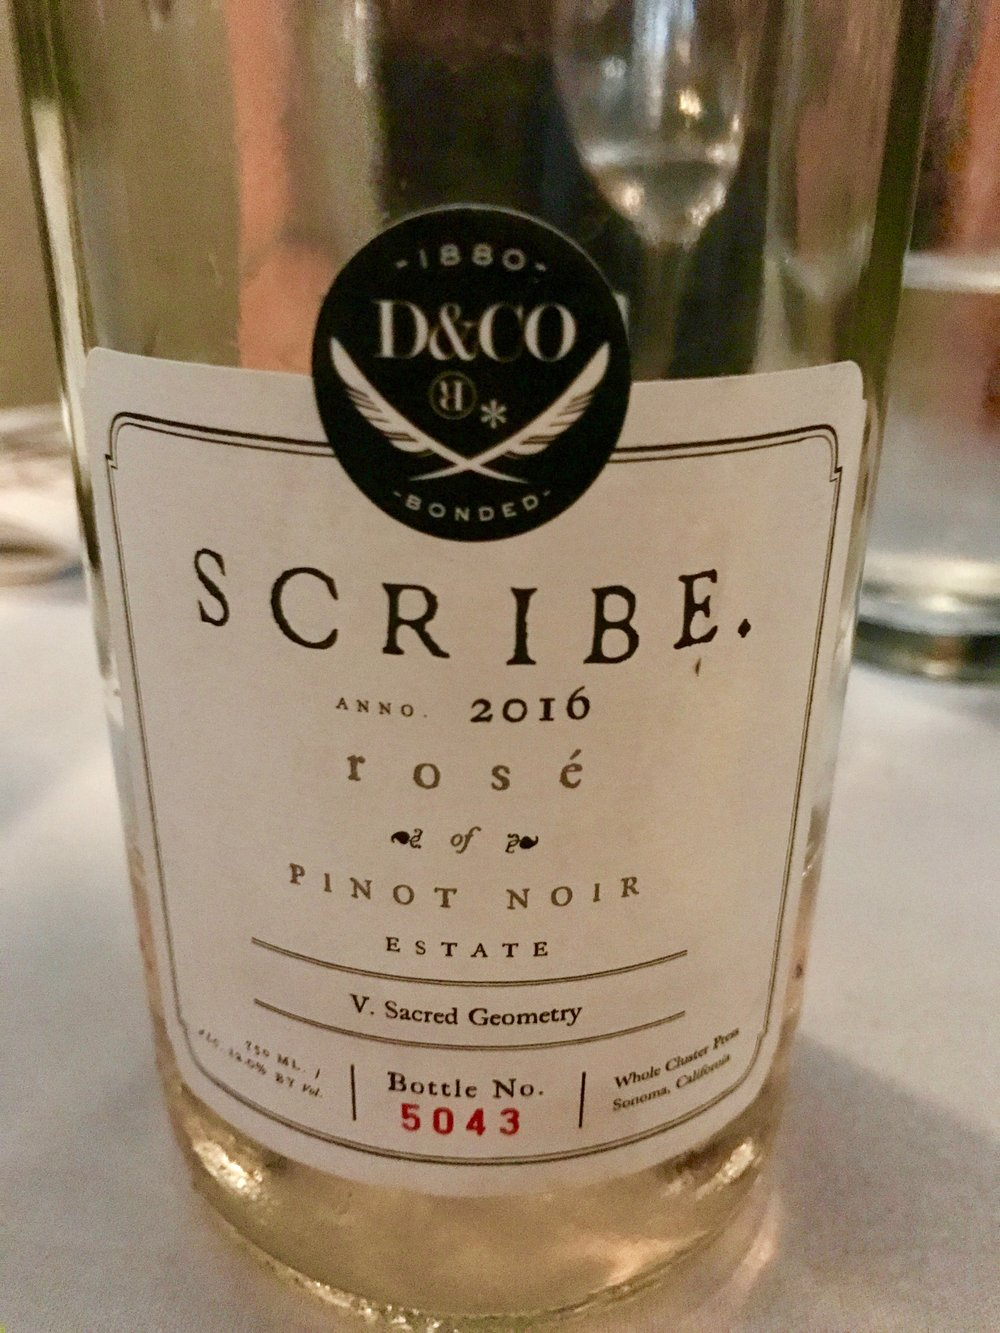 I tasted the 2016  Scribe  Rosé from Sonoma, California for the first time recently and I was very impressed. Made from Pinot Noir grapes, this wine has a lot of red berry flavor and it's delicious! ($32)